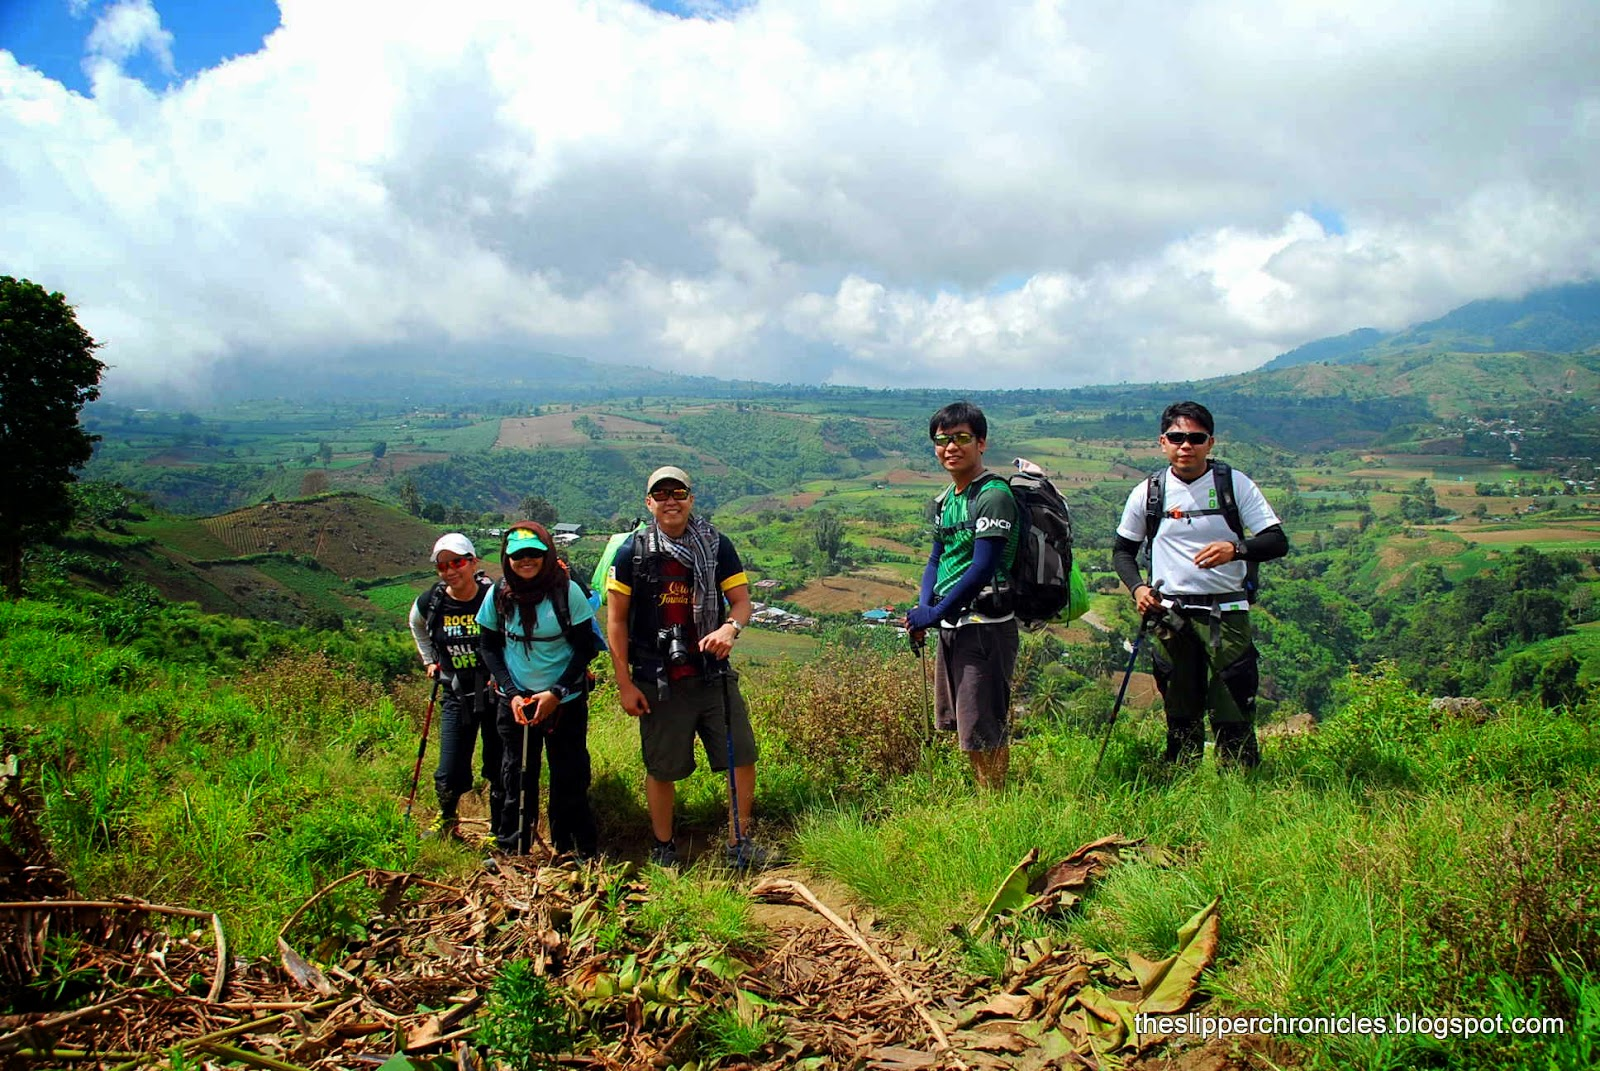 Trekking to Mount Apo